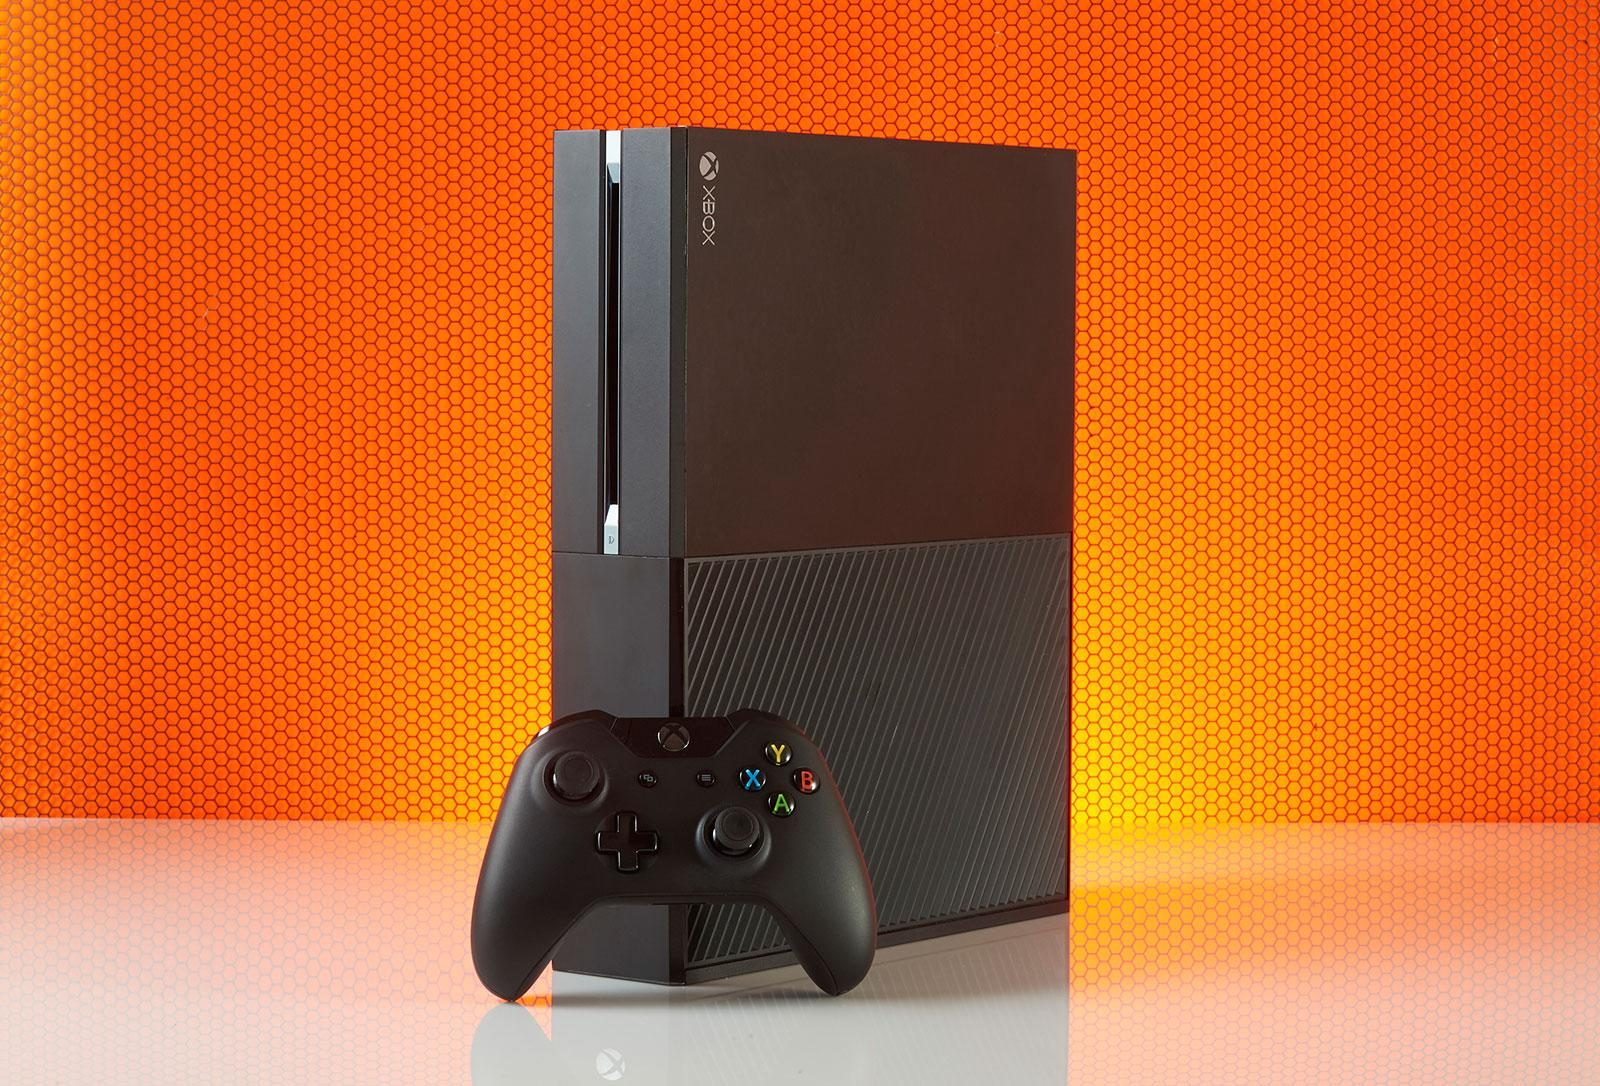 The Xbox One revisited: Microsoft's console has gotten better with age